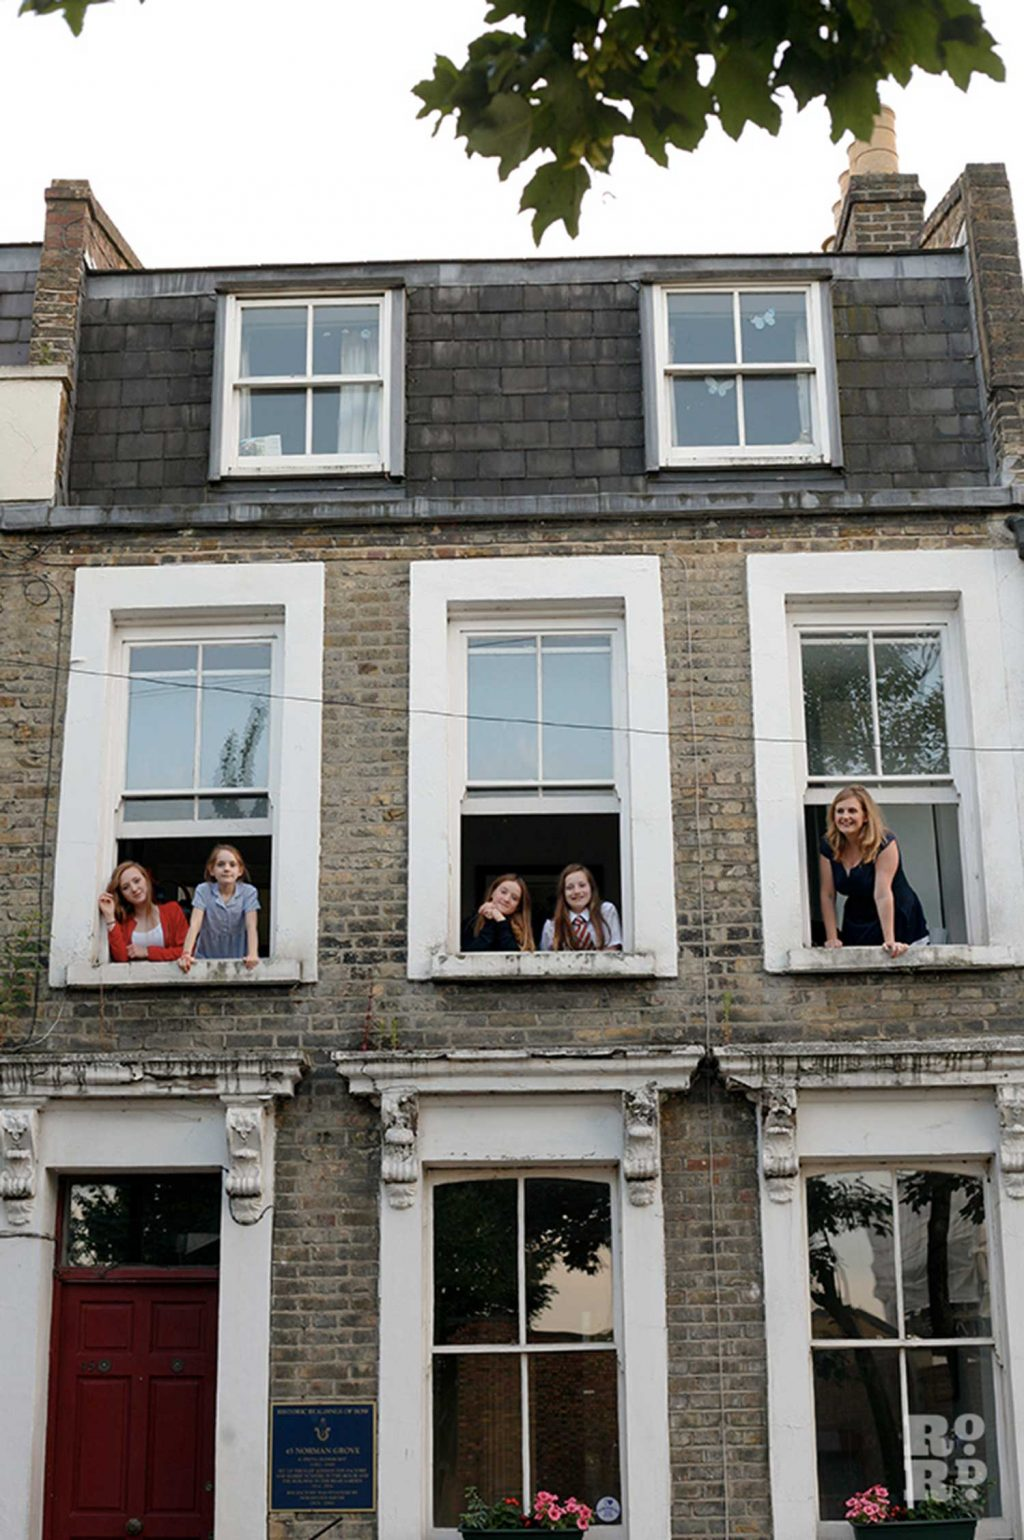 Claire Davis and her children standing at the windows of their Bow home